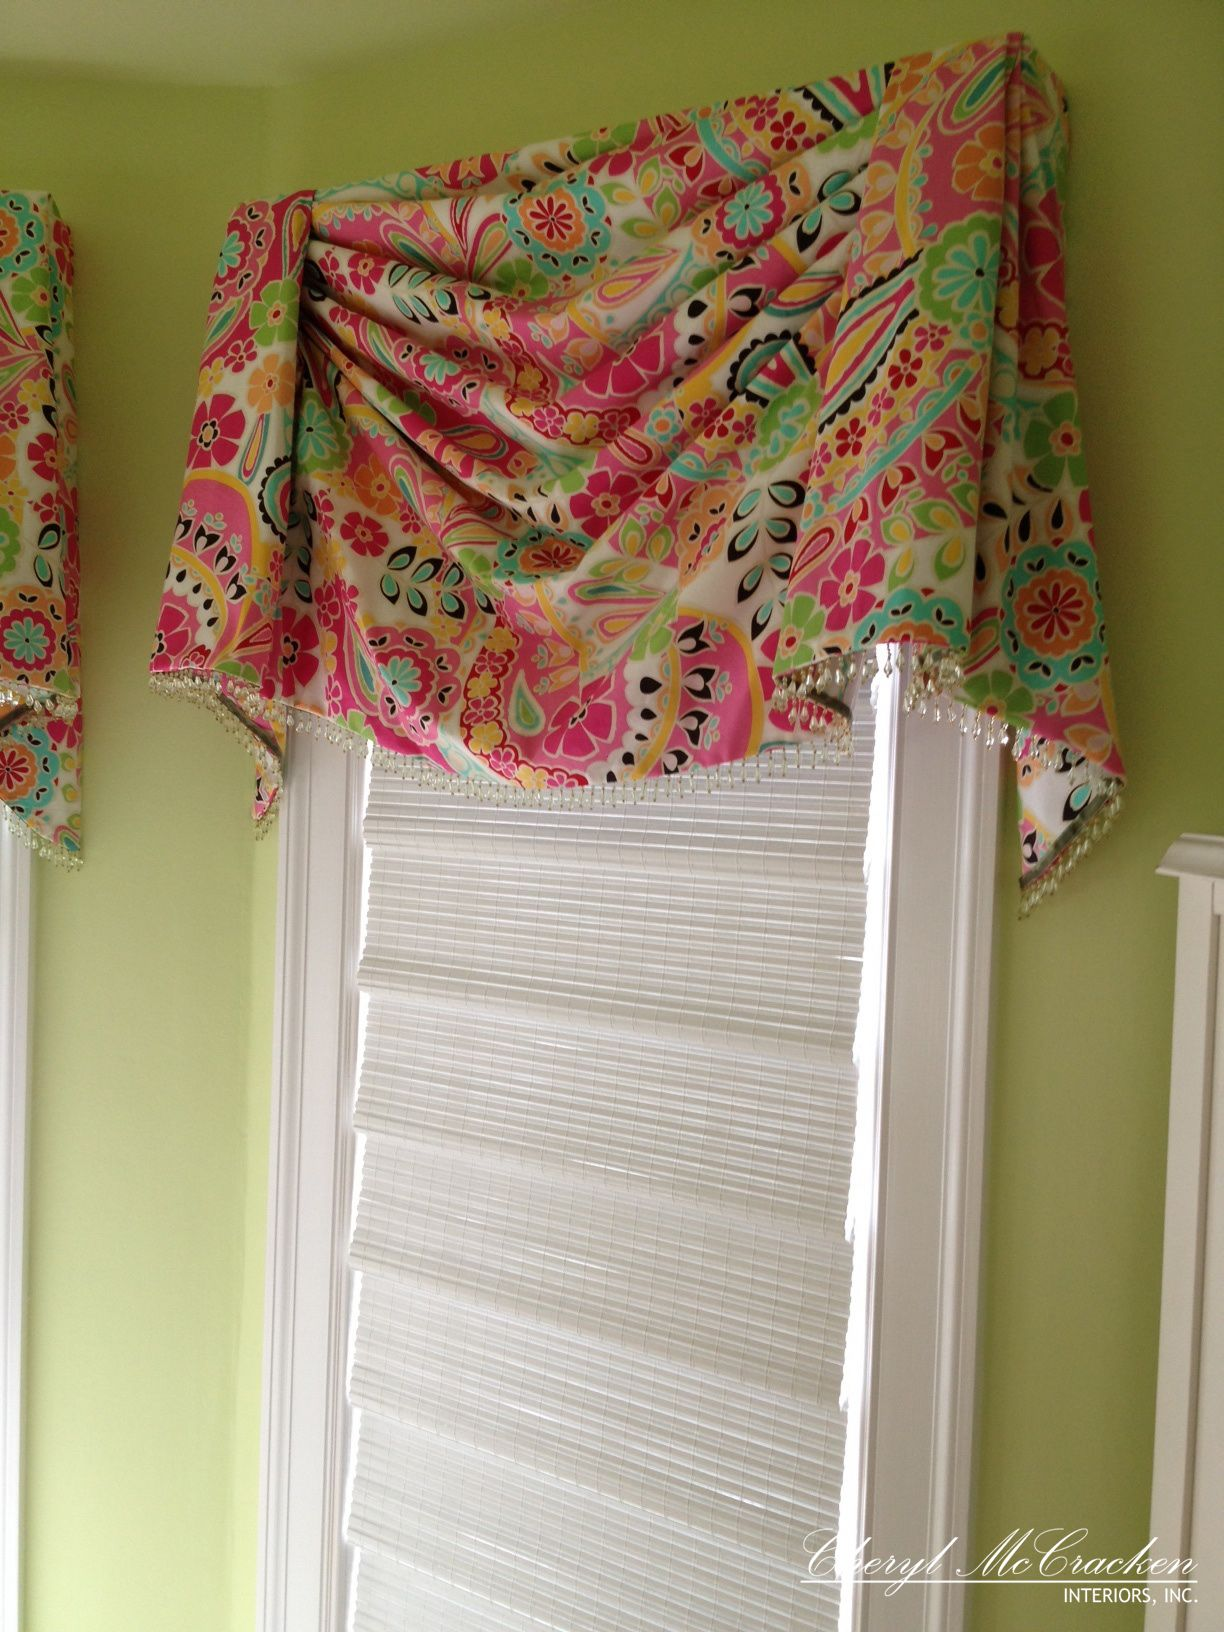 Teenage girls bedroom board mounted swag valance with bead trim. A ...